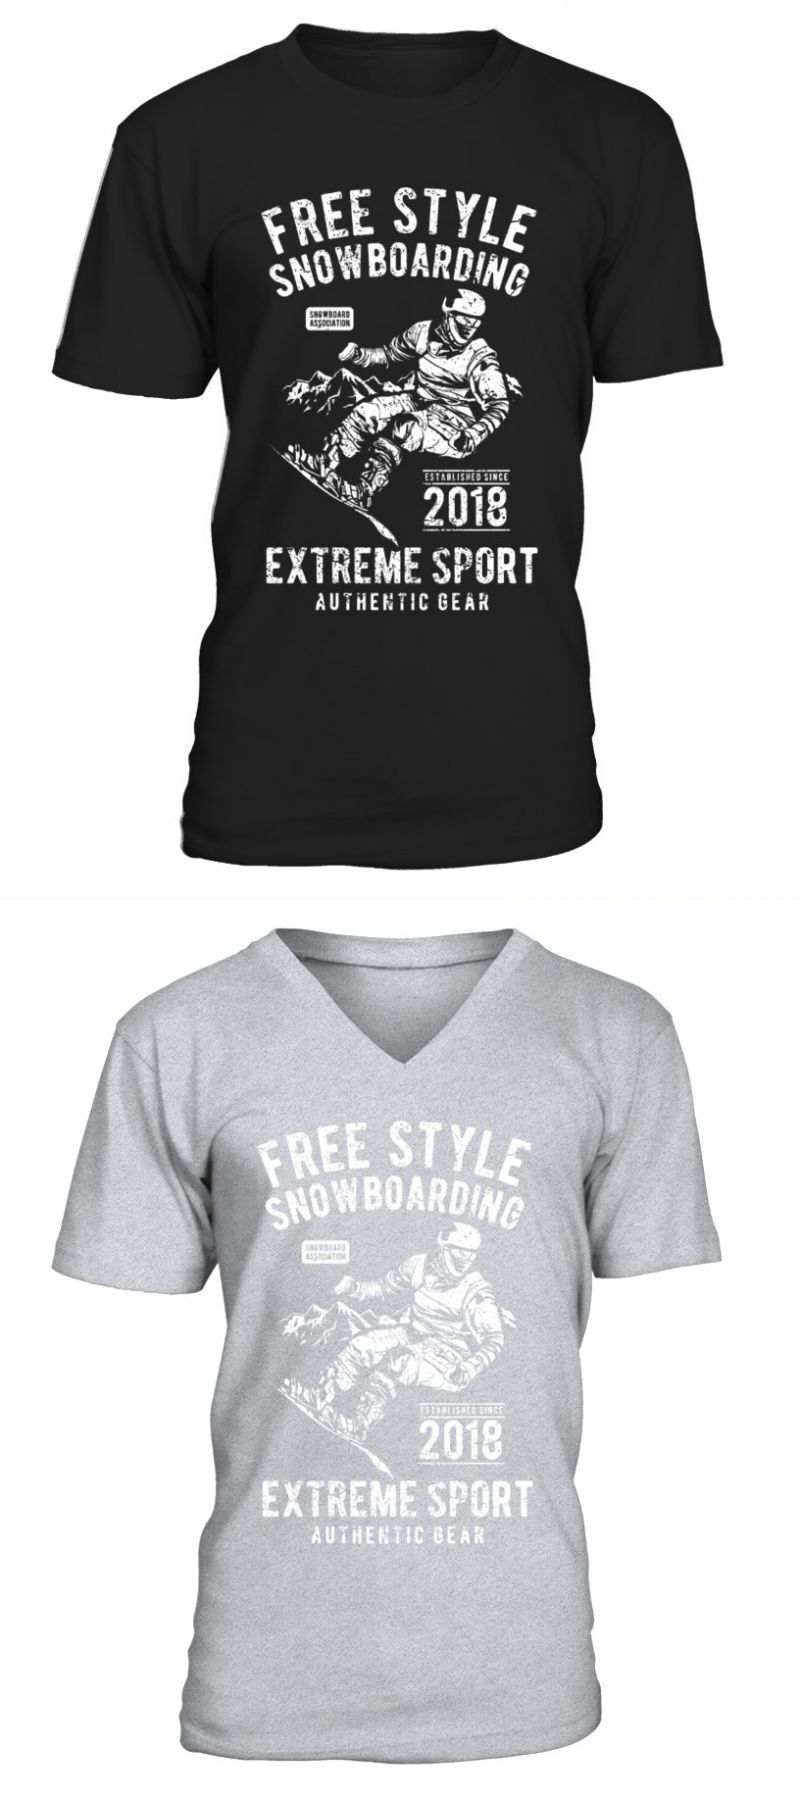 Snowboarding Free Martial Shirt Crafts Arts And Mixed Style x0AUwqw